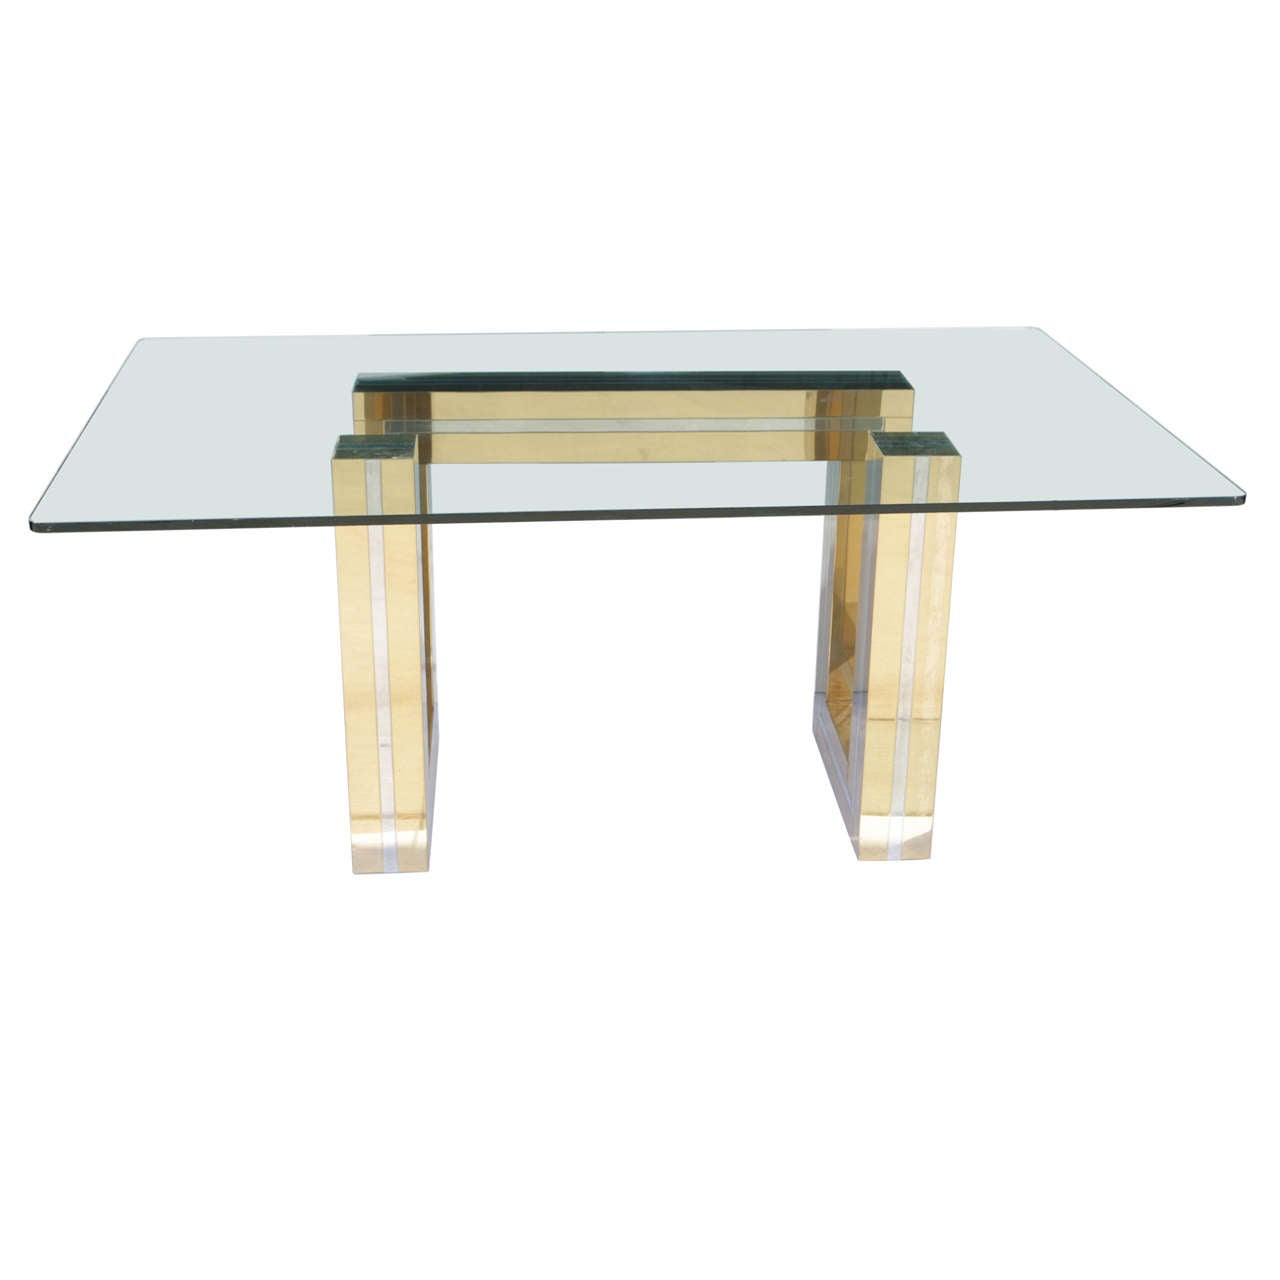 1970s Brass Chrome And Glass Dining Table Attributed To